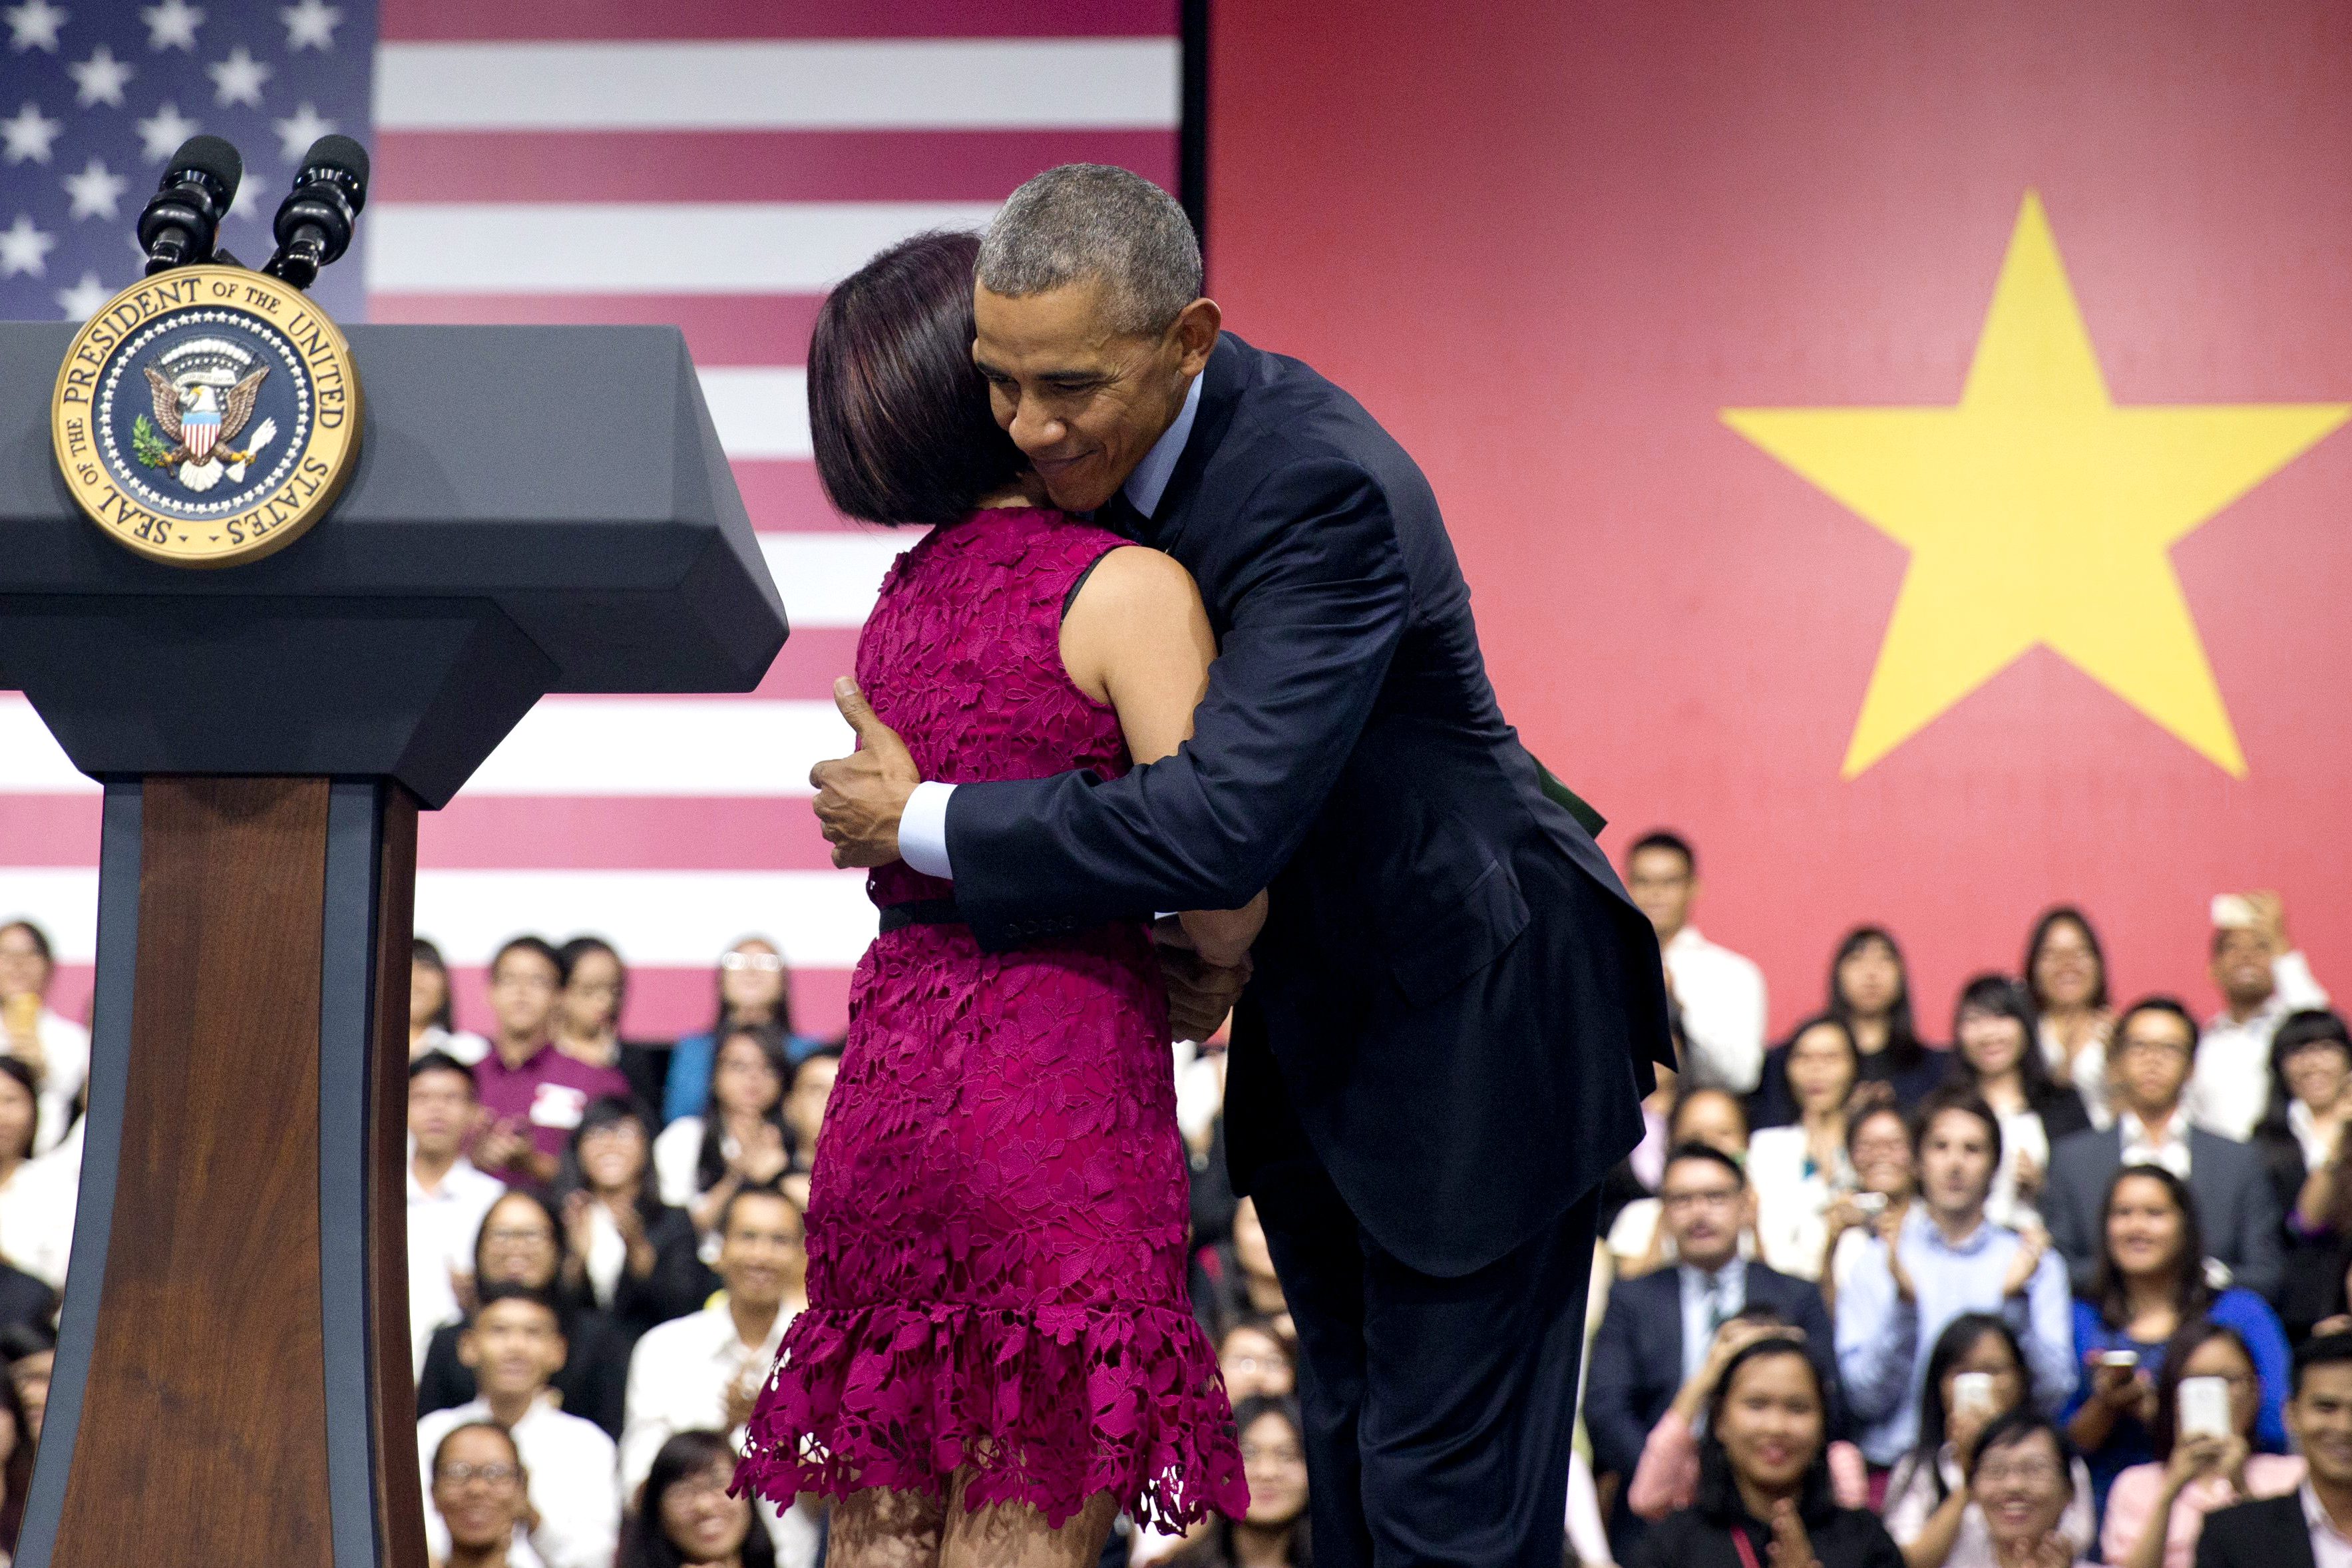 U.S. President Barack Obama embraces Tu Ngo, a member of the YSEALI Network, after she introduces him during the Young Southeast Asian Leaders Initiative (YSEALI) town hall at the GEM Center in Ho Chi Minh City, Vietnam, May 25, 2016.